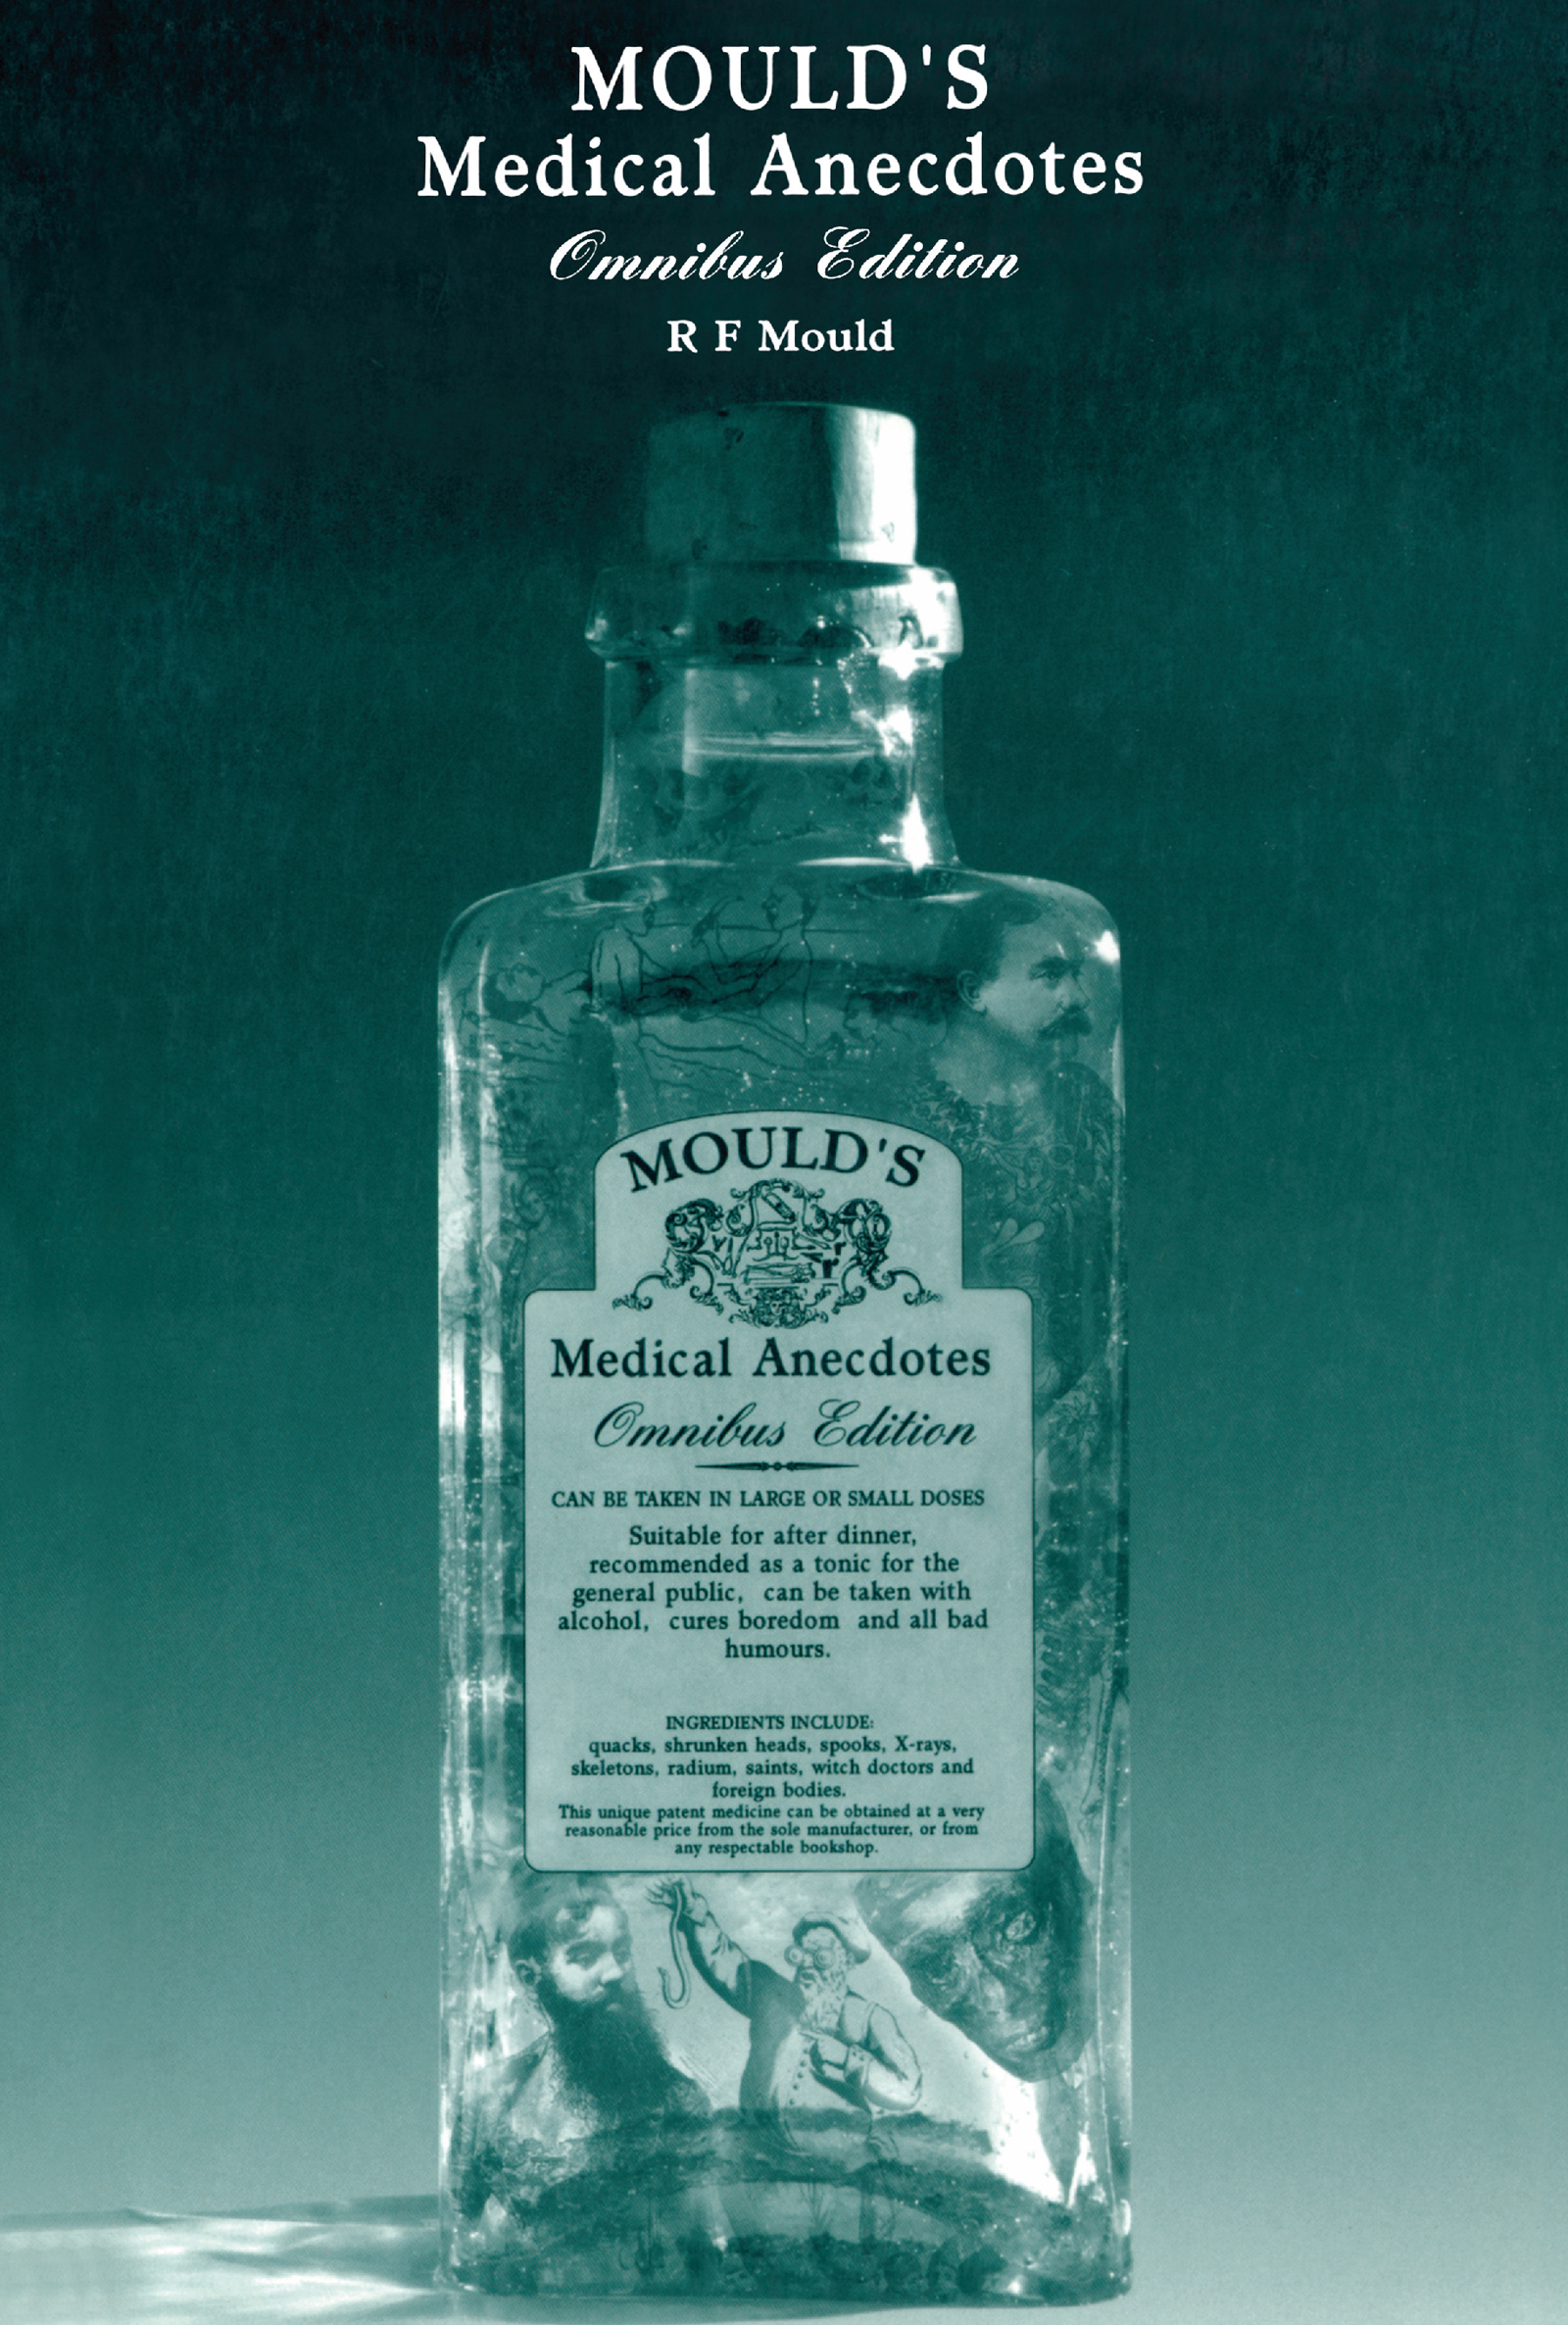 Mould's Medical Anecdotes